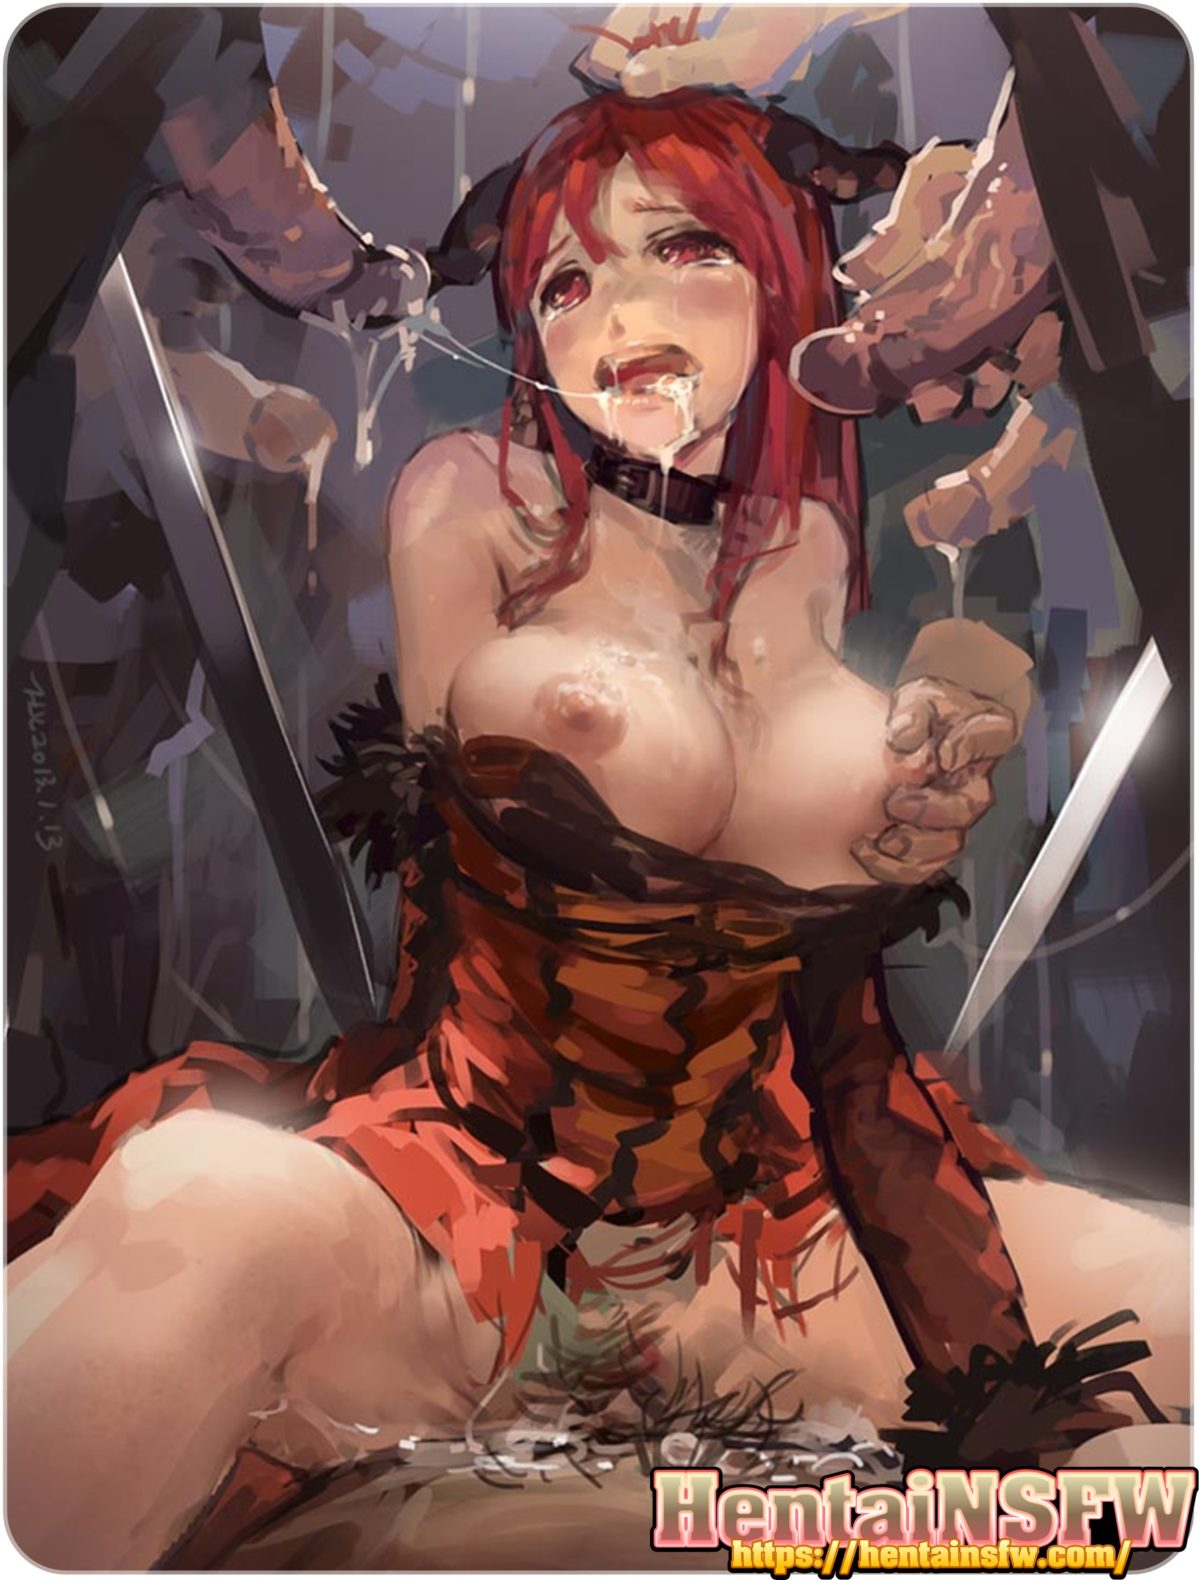 NSFW uncensored full color oppai hentai art of big tits babe gang banged in cartoon porn sex illustration.